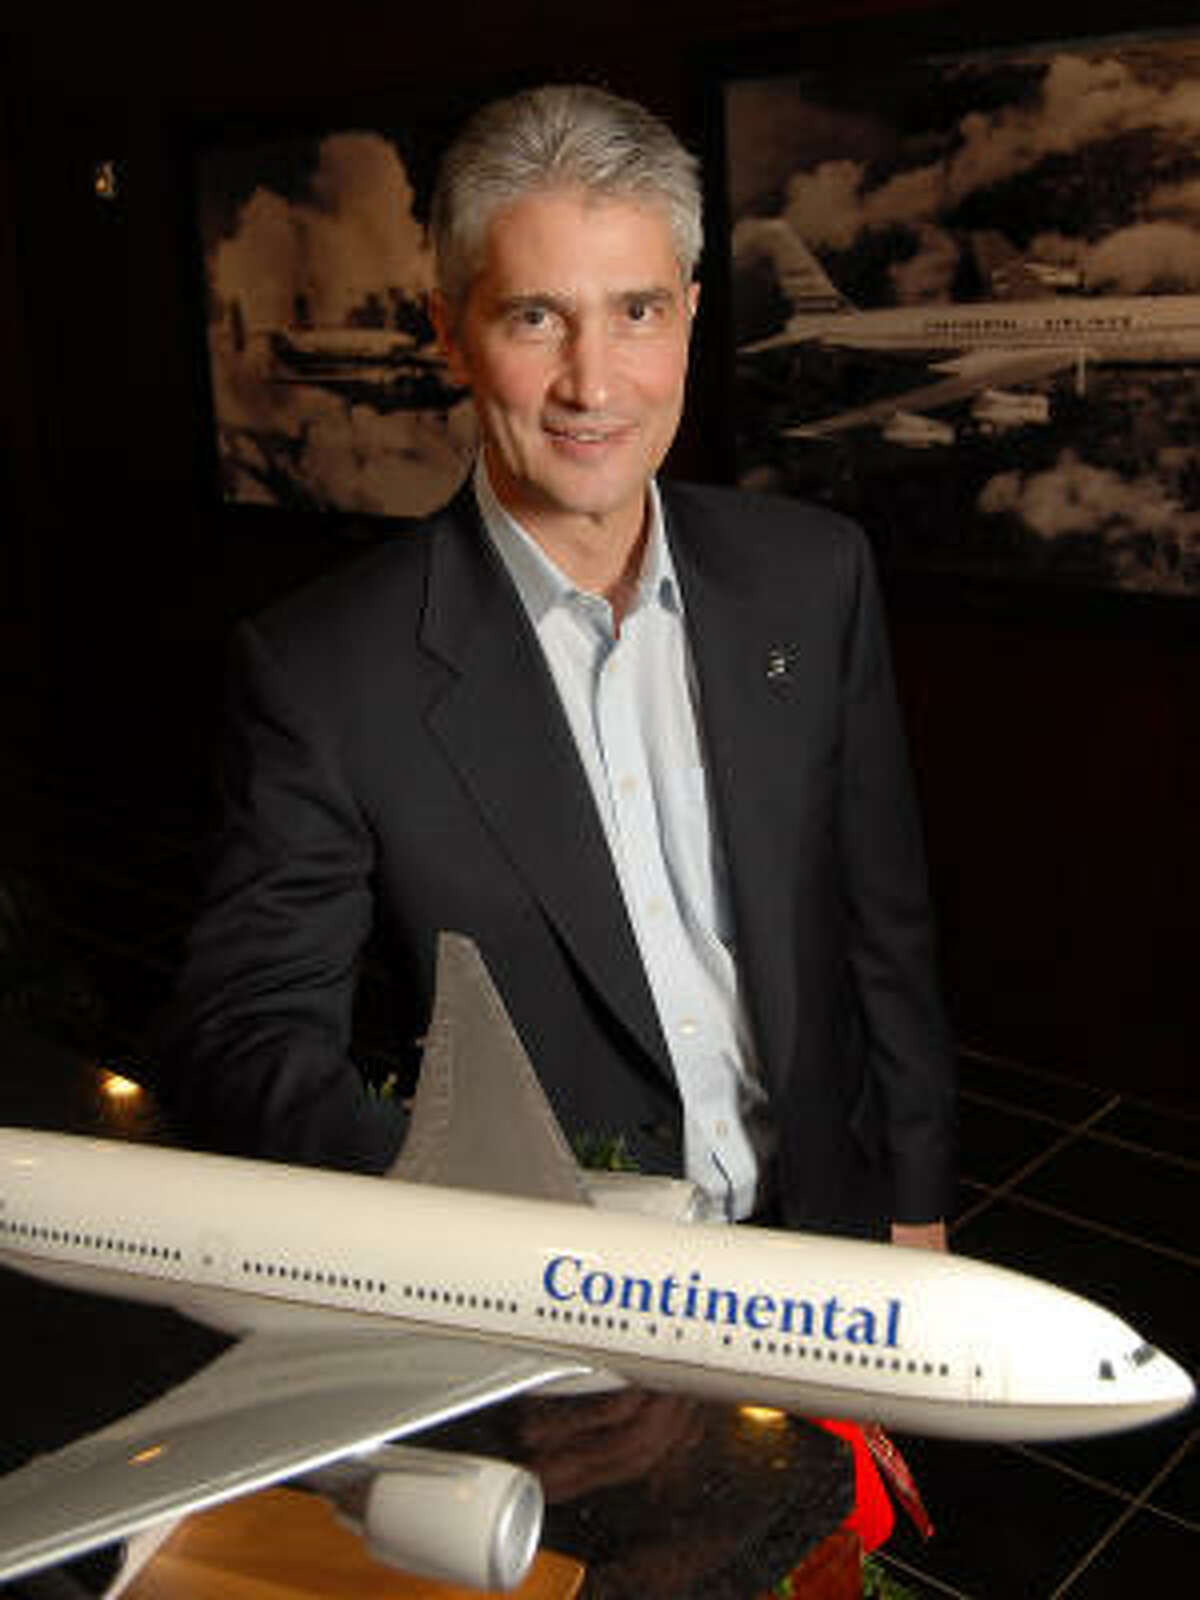 Jeff Smisek has been running Continental for just four months.